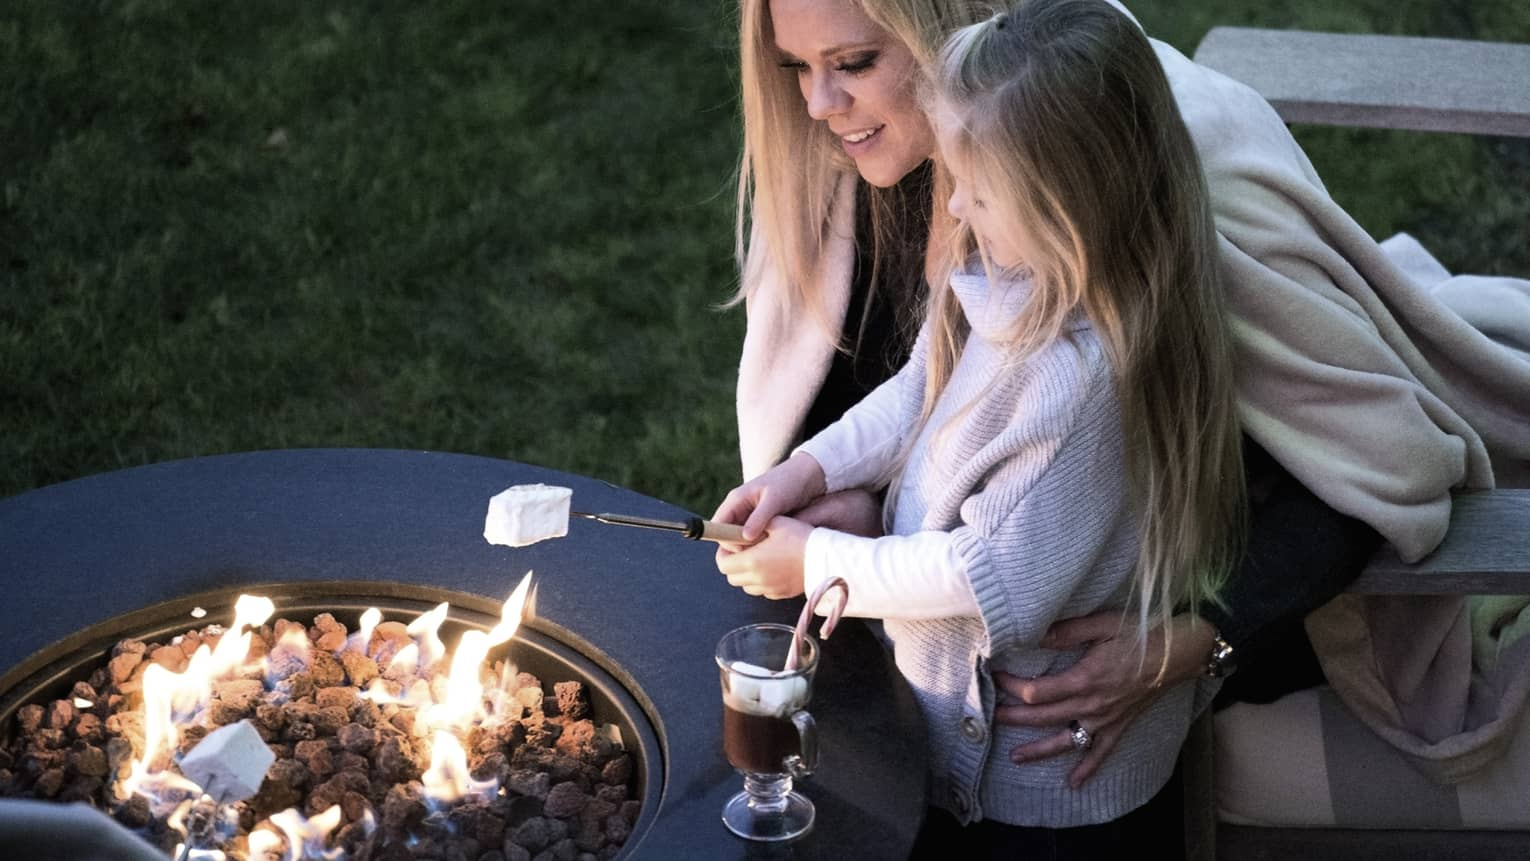 Woman puts her arms around girl roasting marshmallow over a fire pit